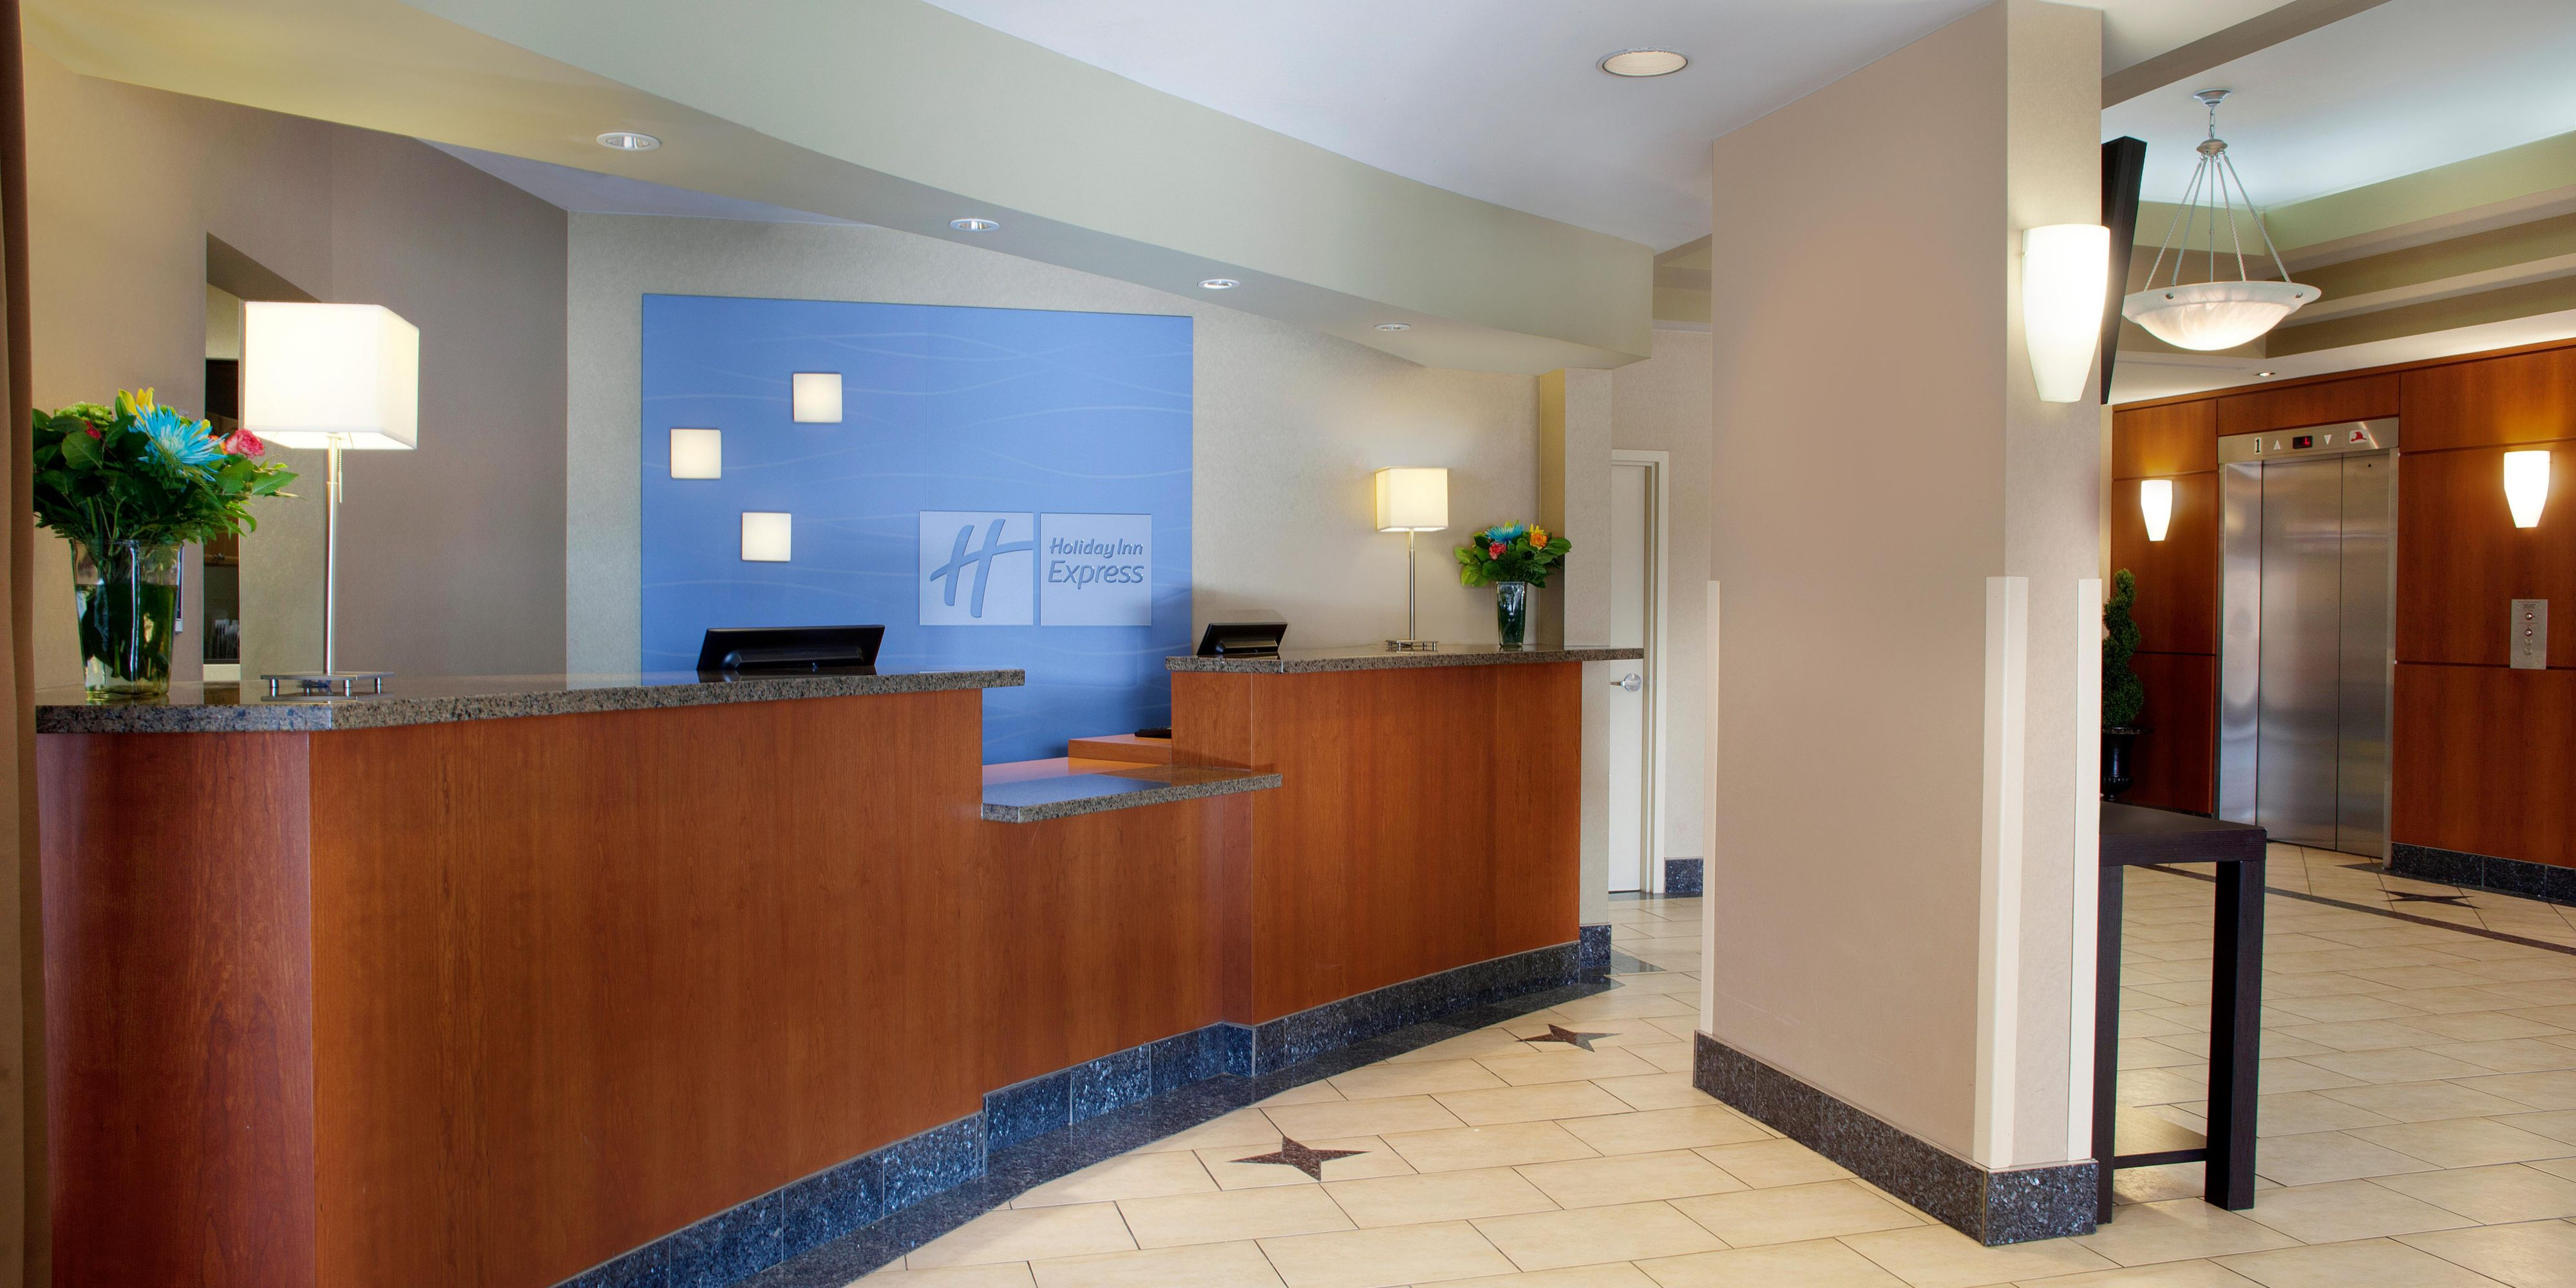 Crib for sale london ontario - Holiday Inn Express And Suites London 3561236499 2x1